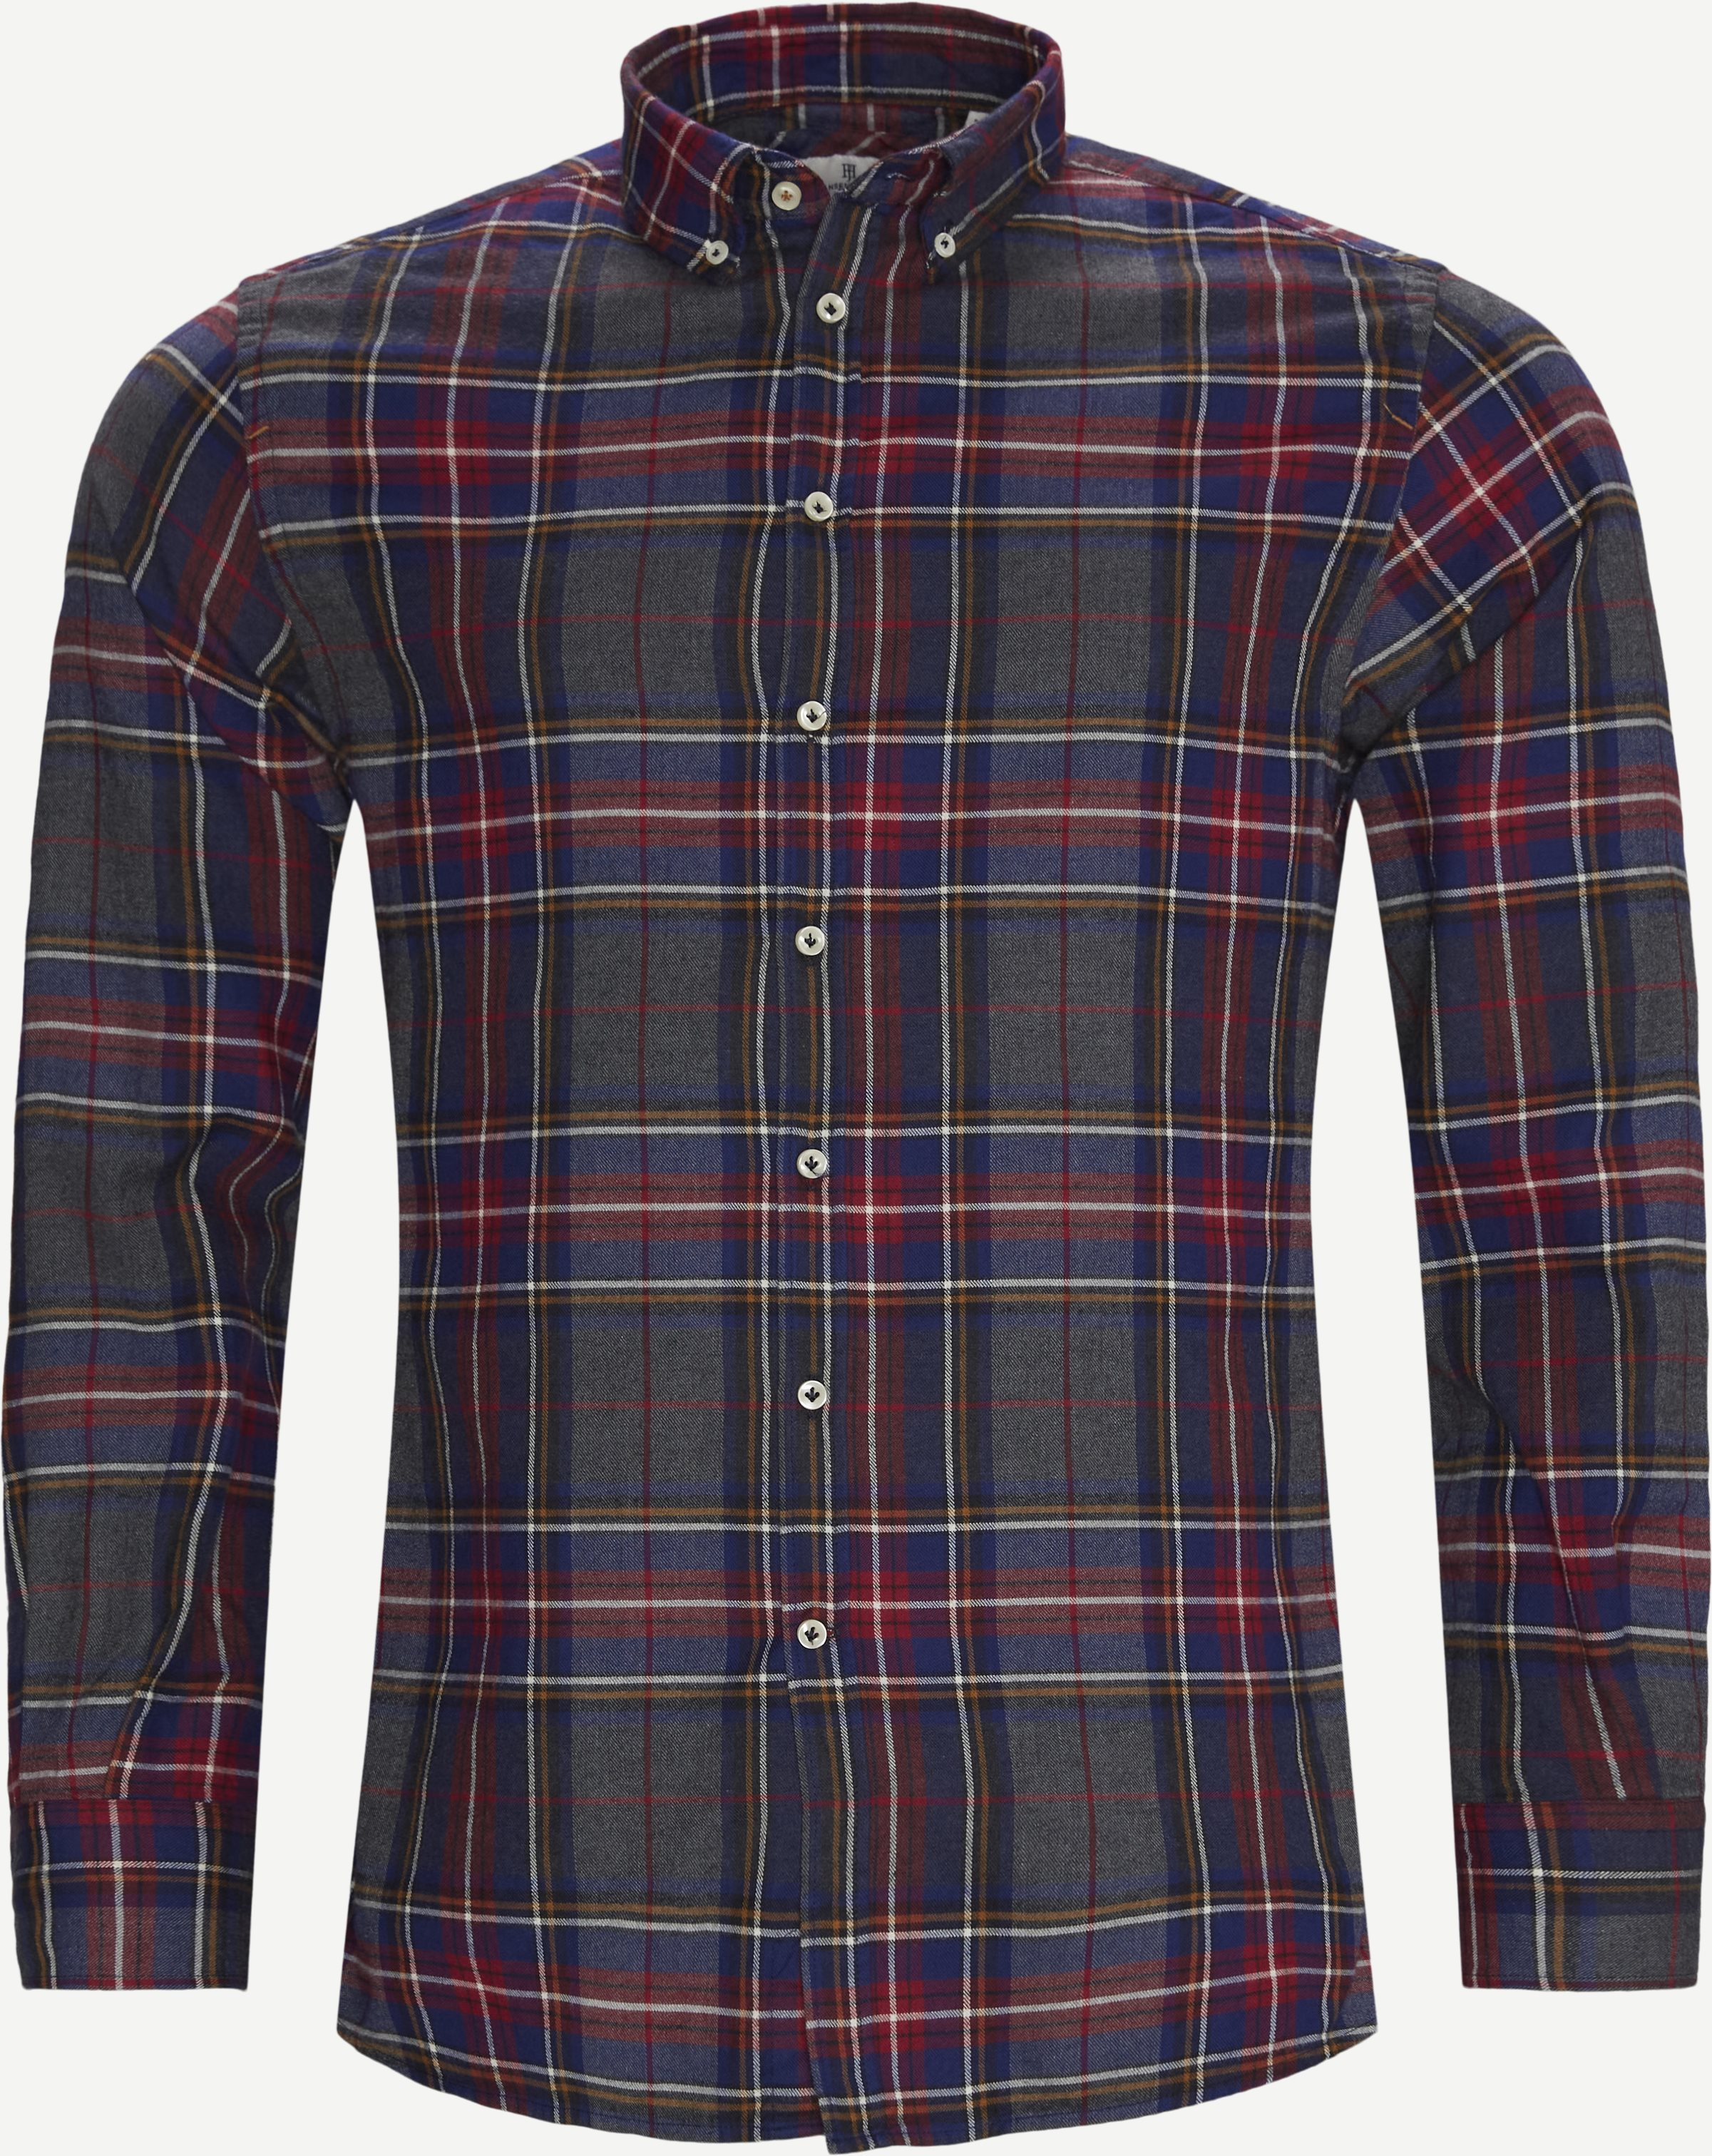 Polar Melange Multi Shirt - Shirts - Casual fit - Red